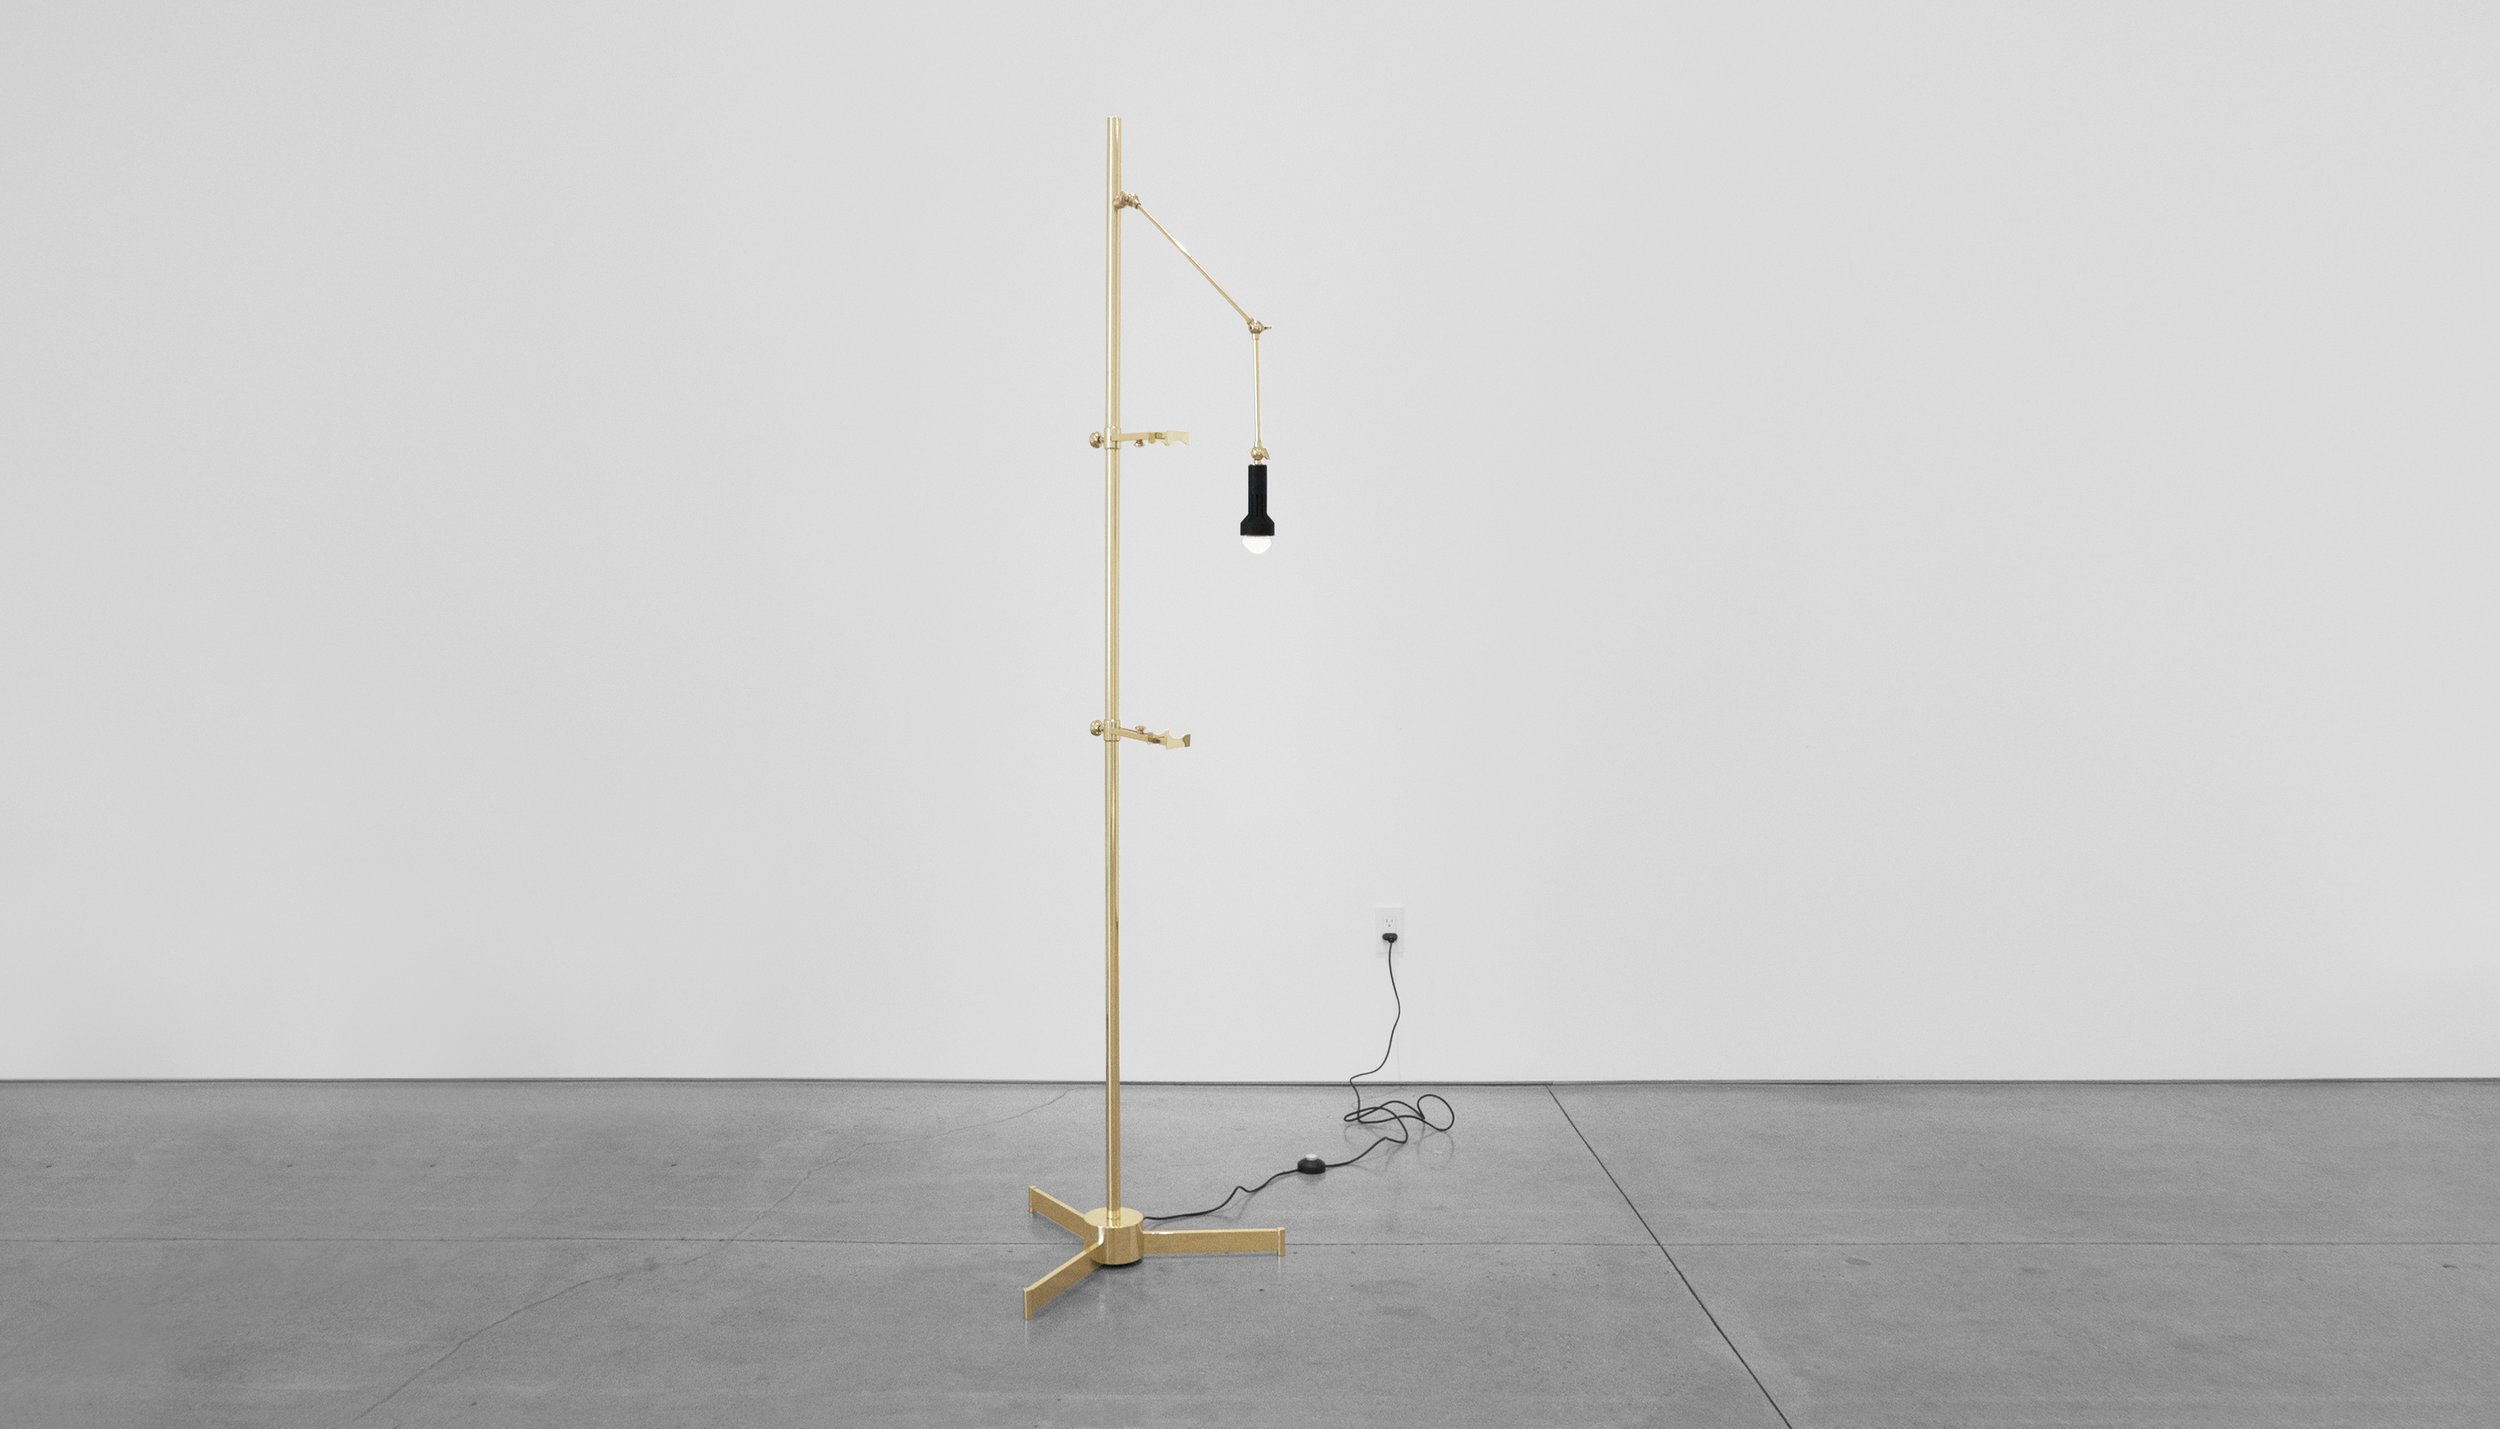 Angelo Lelli Easel Lamp for Arredoluce, c. 1950-1959, Brass, 82 H x 22.5 W x 33 D inches_4.jpg